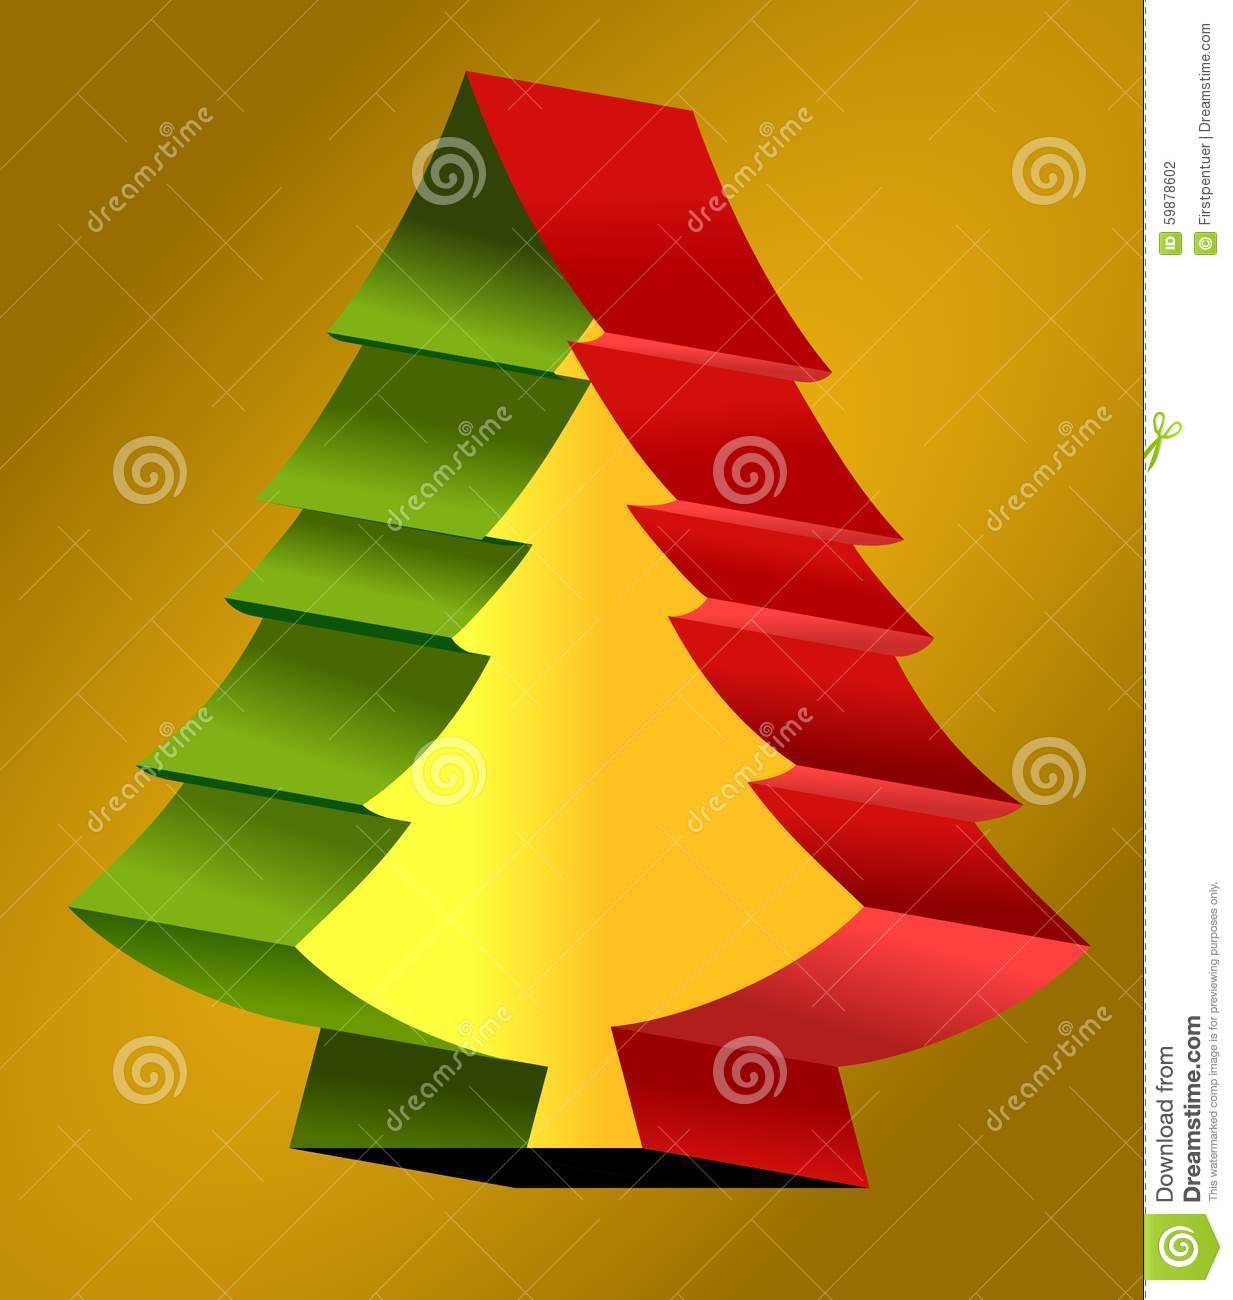 Red and green christmas tree at yellow background stock for Red and yellow christmas tree